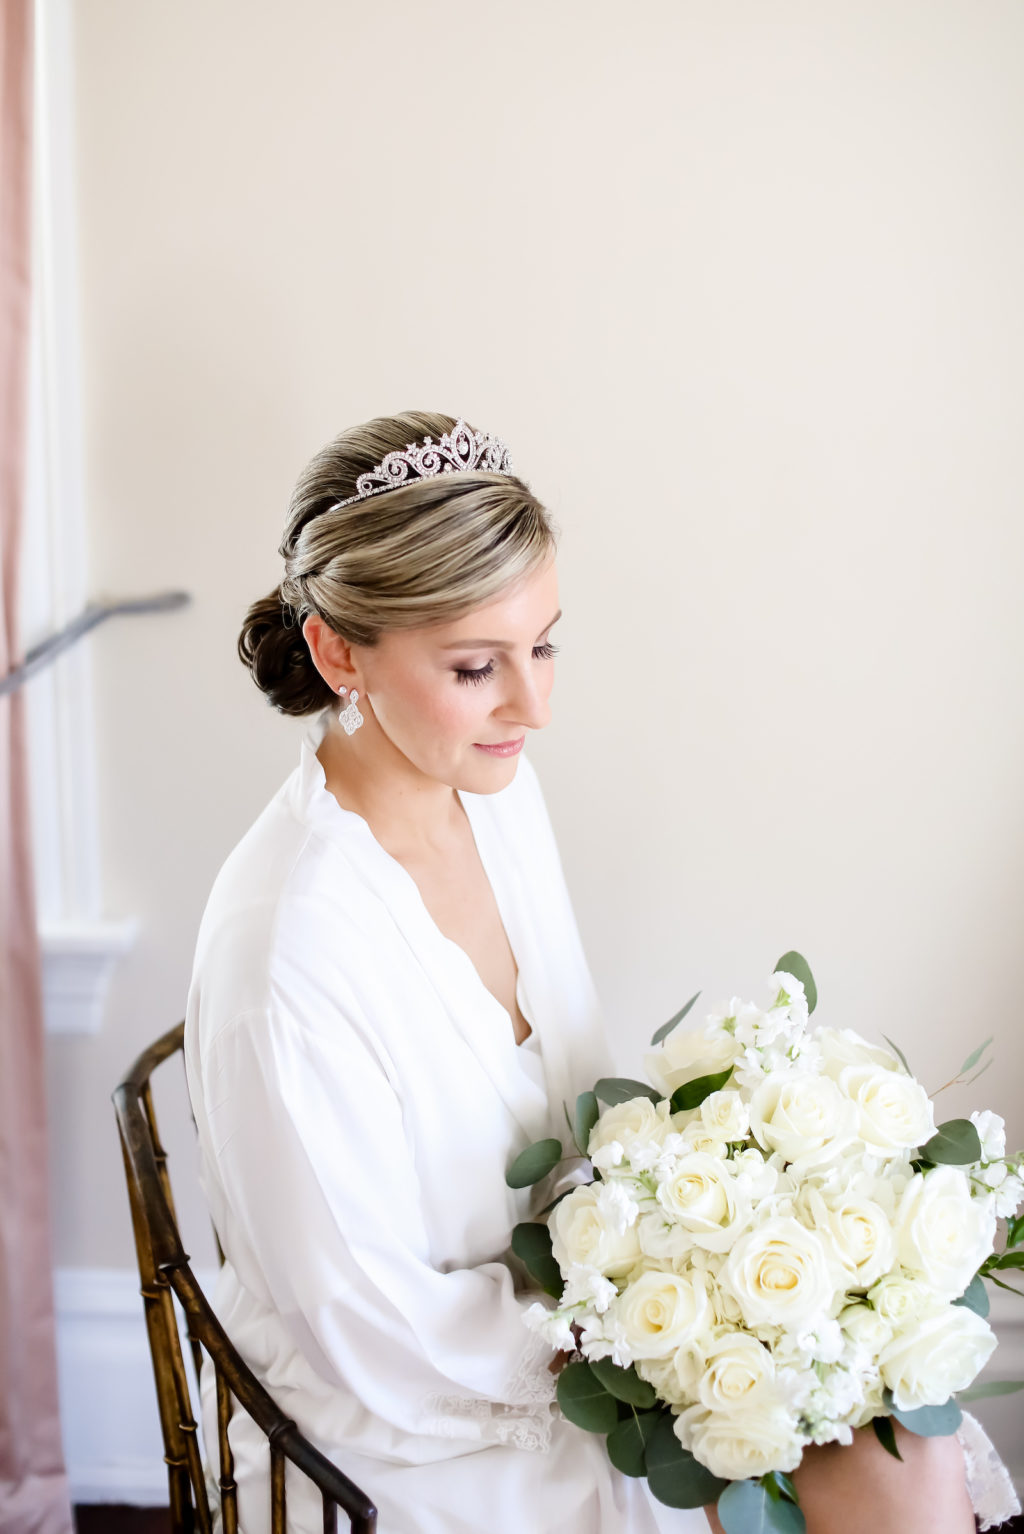 Classic Bride with Hair in Bun and Rhinestone Headband Getting Wedding Ready in White Robe Holding White Roses Floral Bouquet | Tampa Bay Wedding Photographer Lifelong Photography Studio